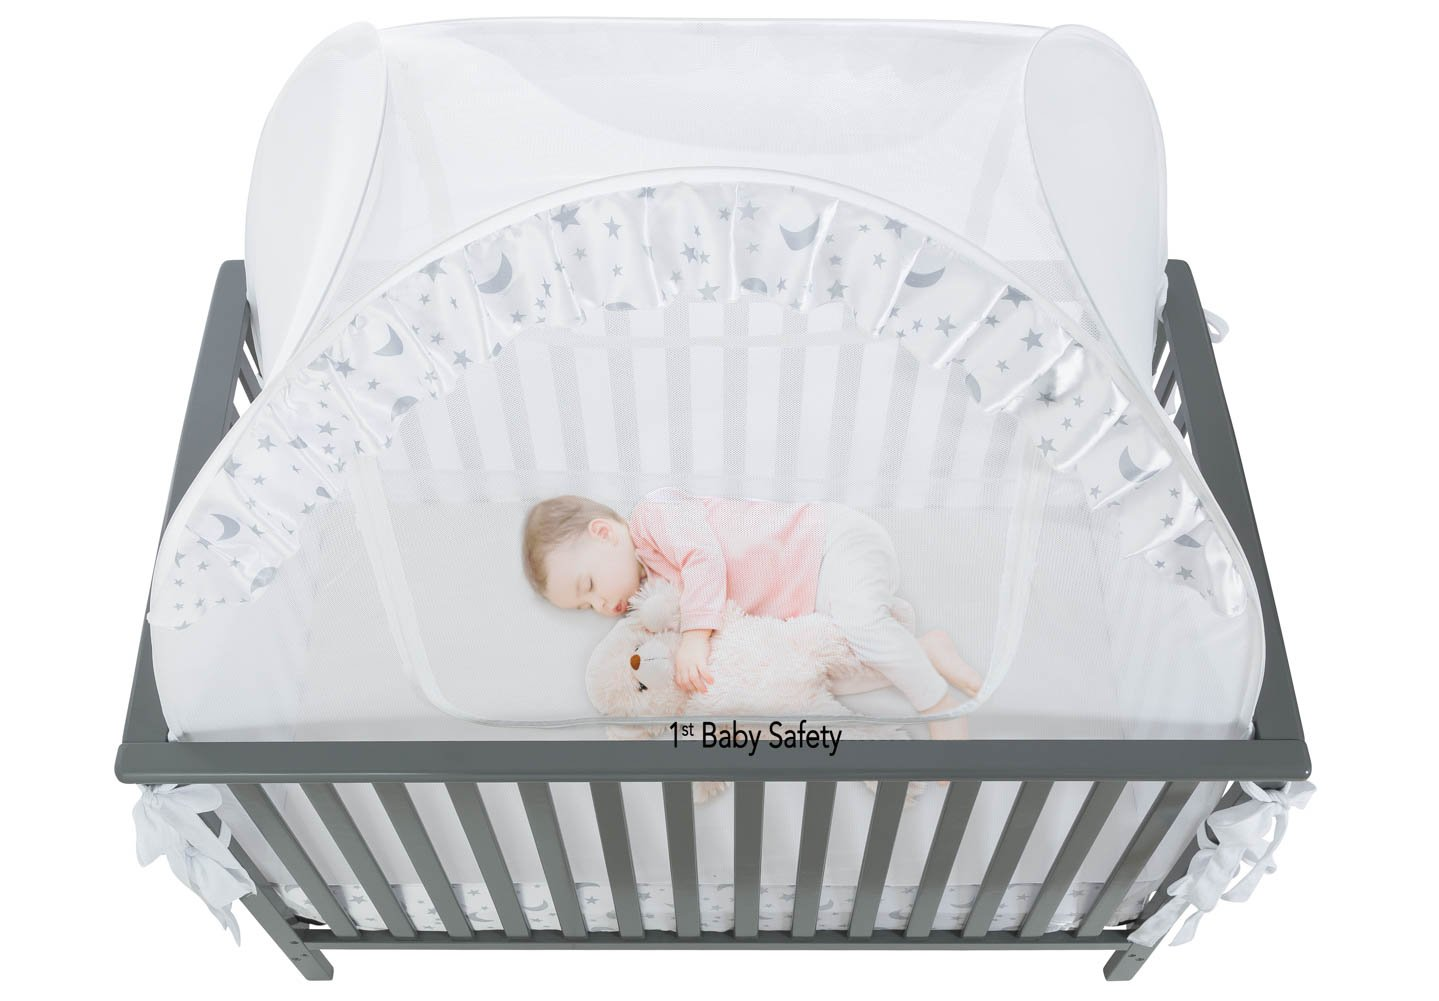 Amazon.com  SEE THROUGH MESH TOP - Baby Crib Tent Safety Net Pop Up Canopy Cover  Baby  sc 1 st  Amazon.com : crib tent 2 - memphite.com